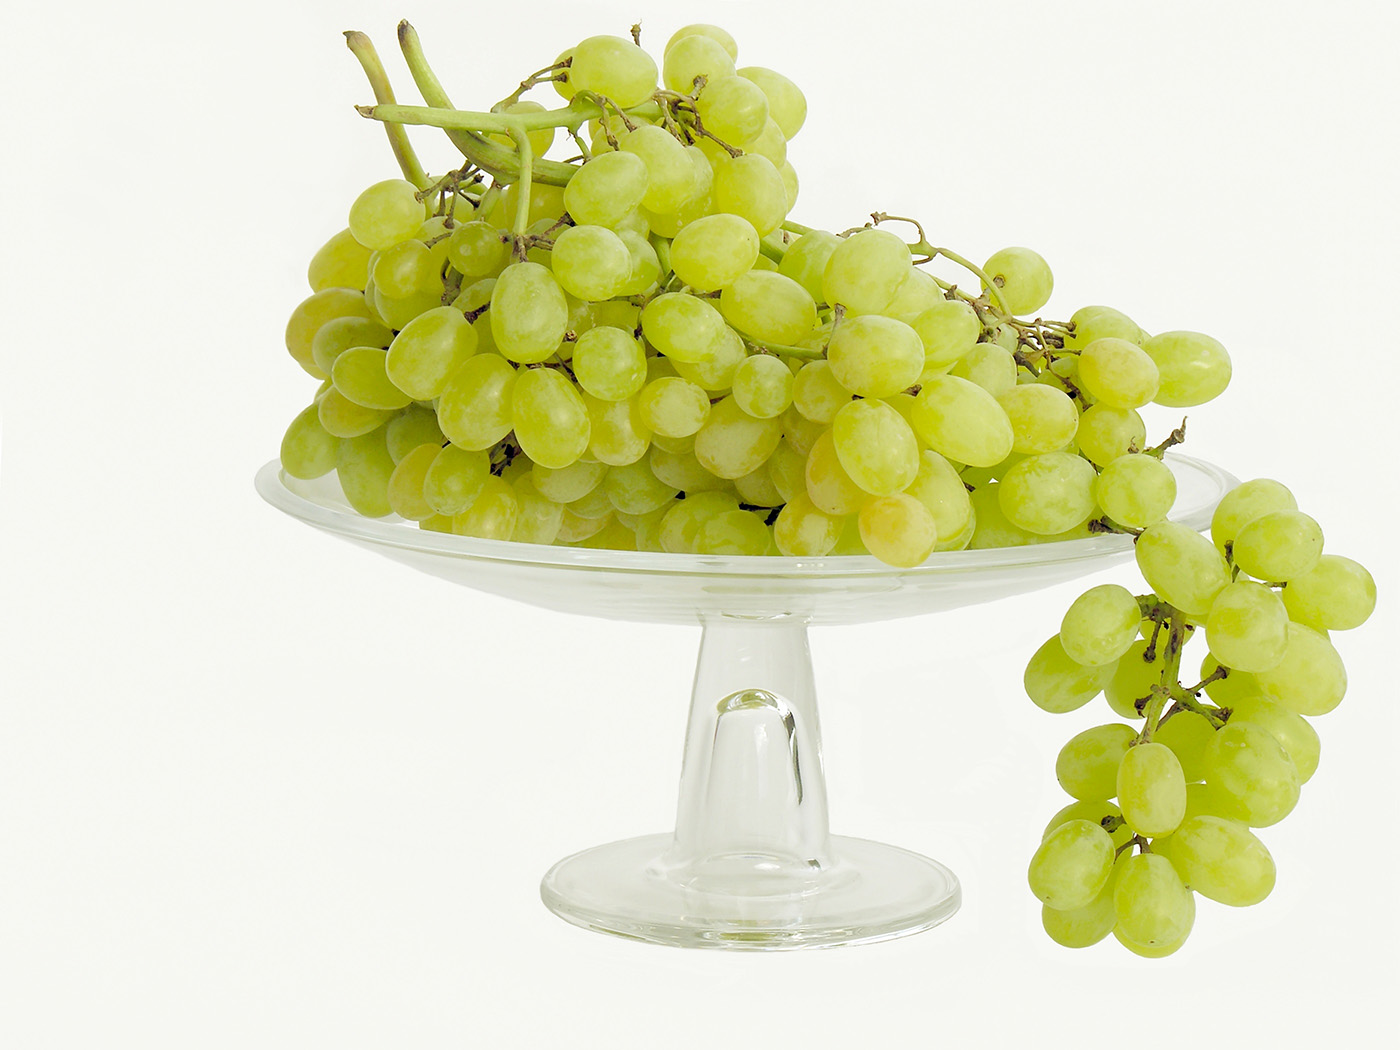 Clusters of green grapes on fruit plate 50187